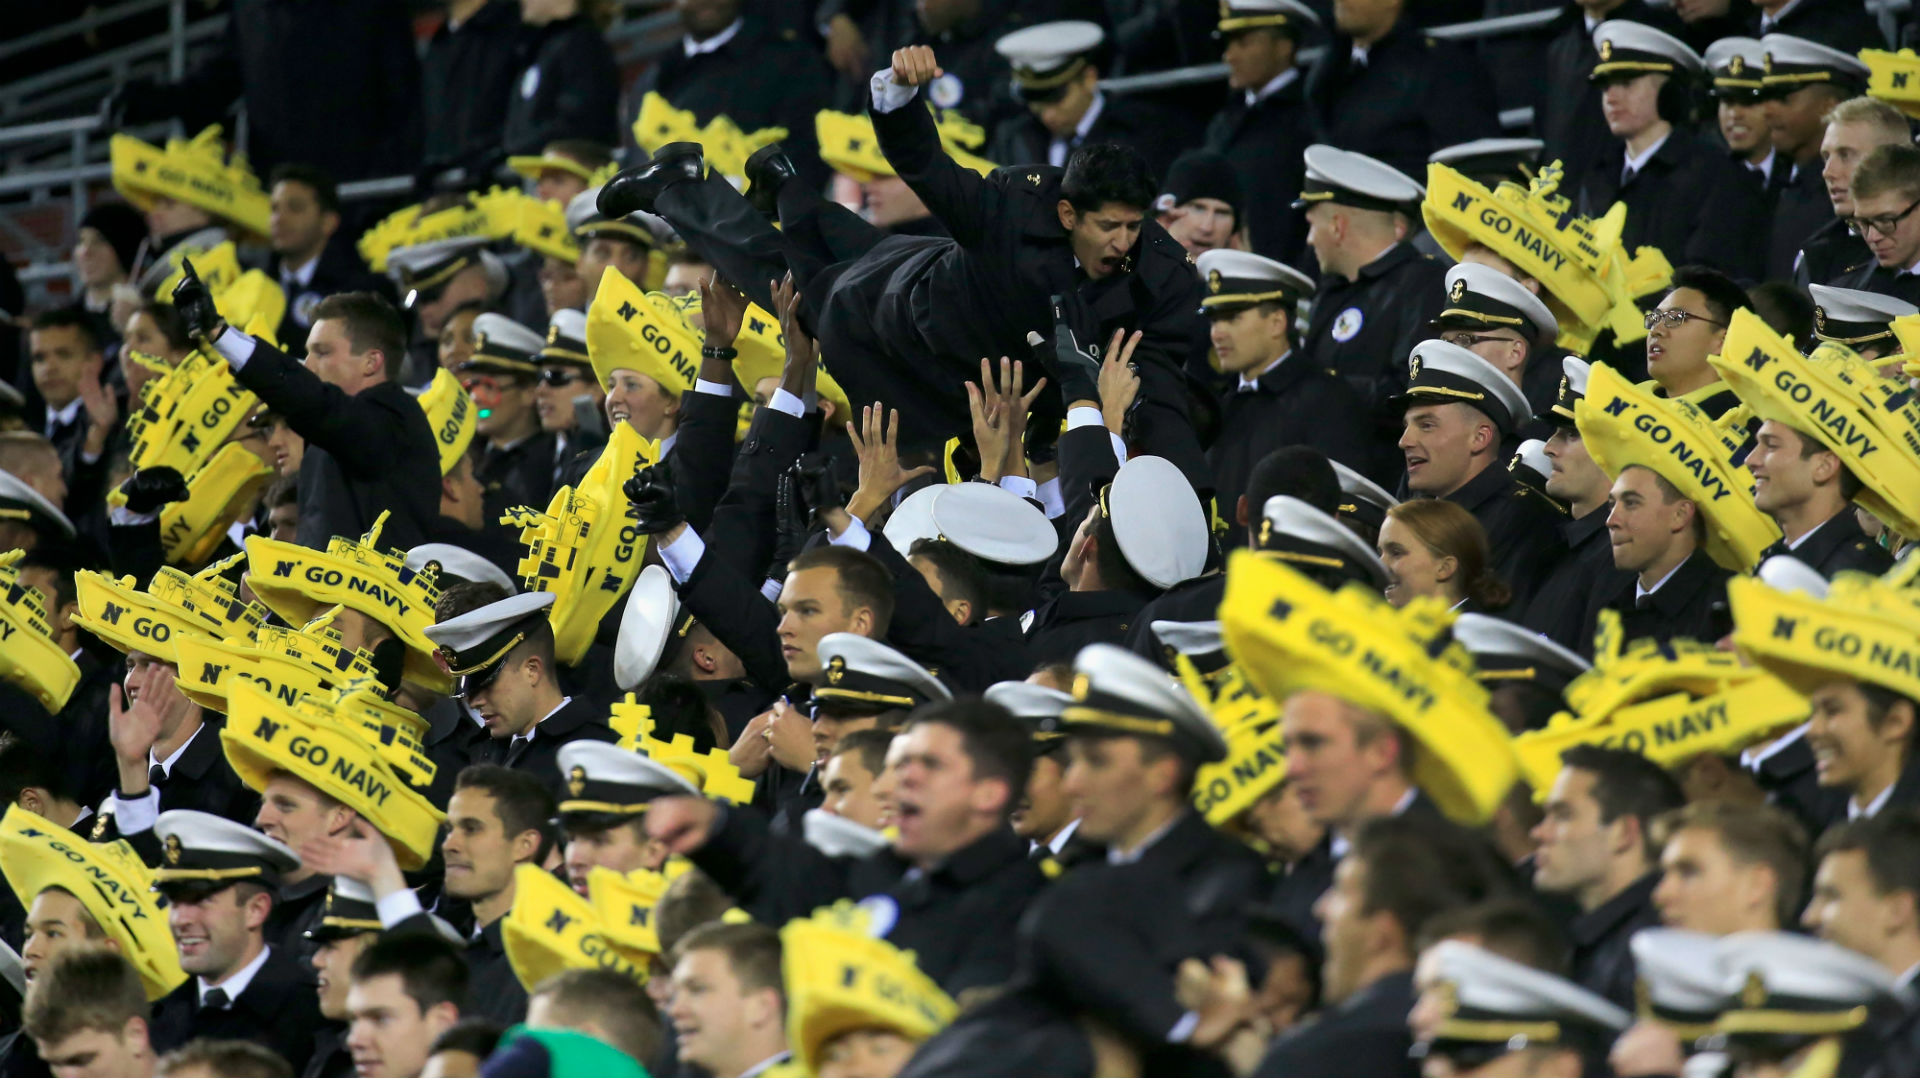 Navy-Notre Dame series might make stop in San Diego